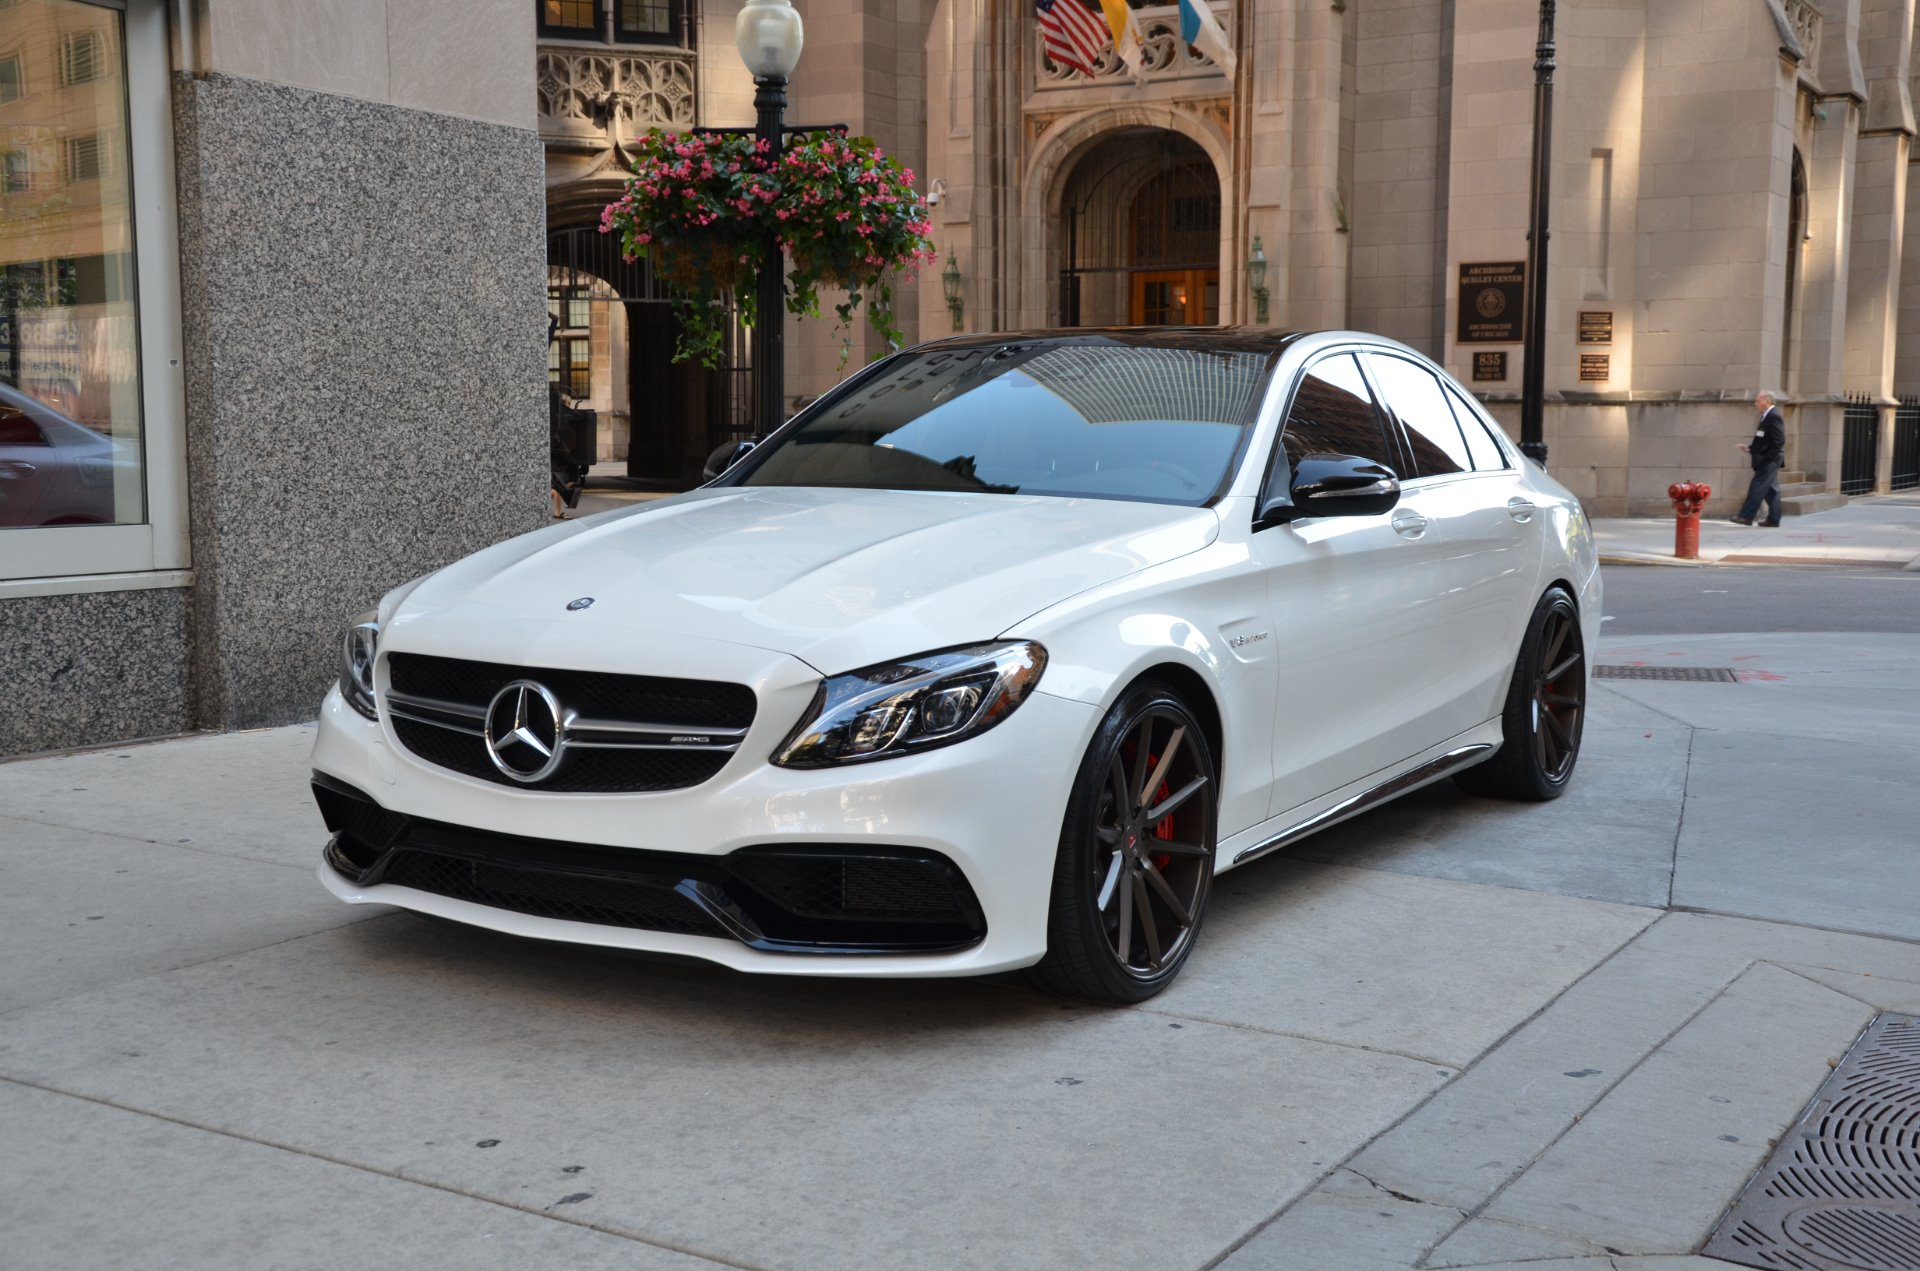 2015 mercedes benz c class c63 s amg stock gc charlie01 for Mercedes benz chicago dealers